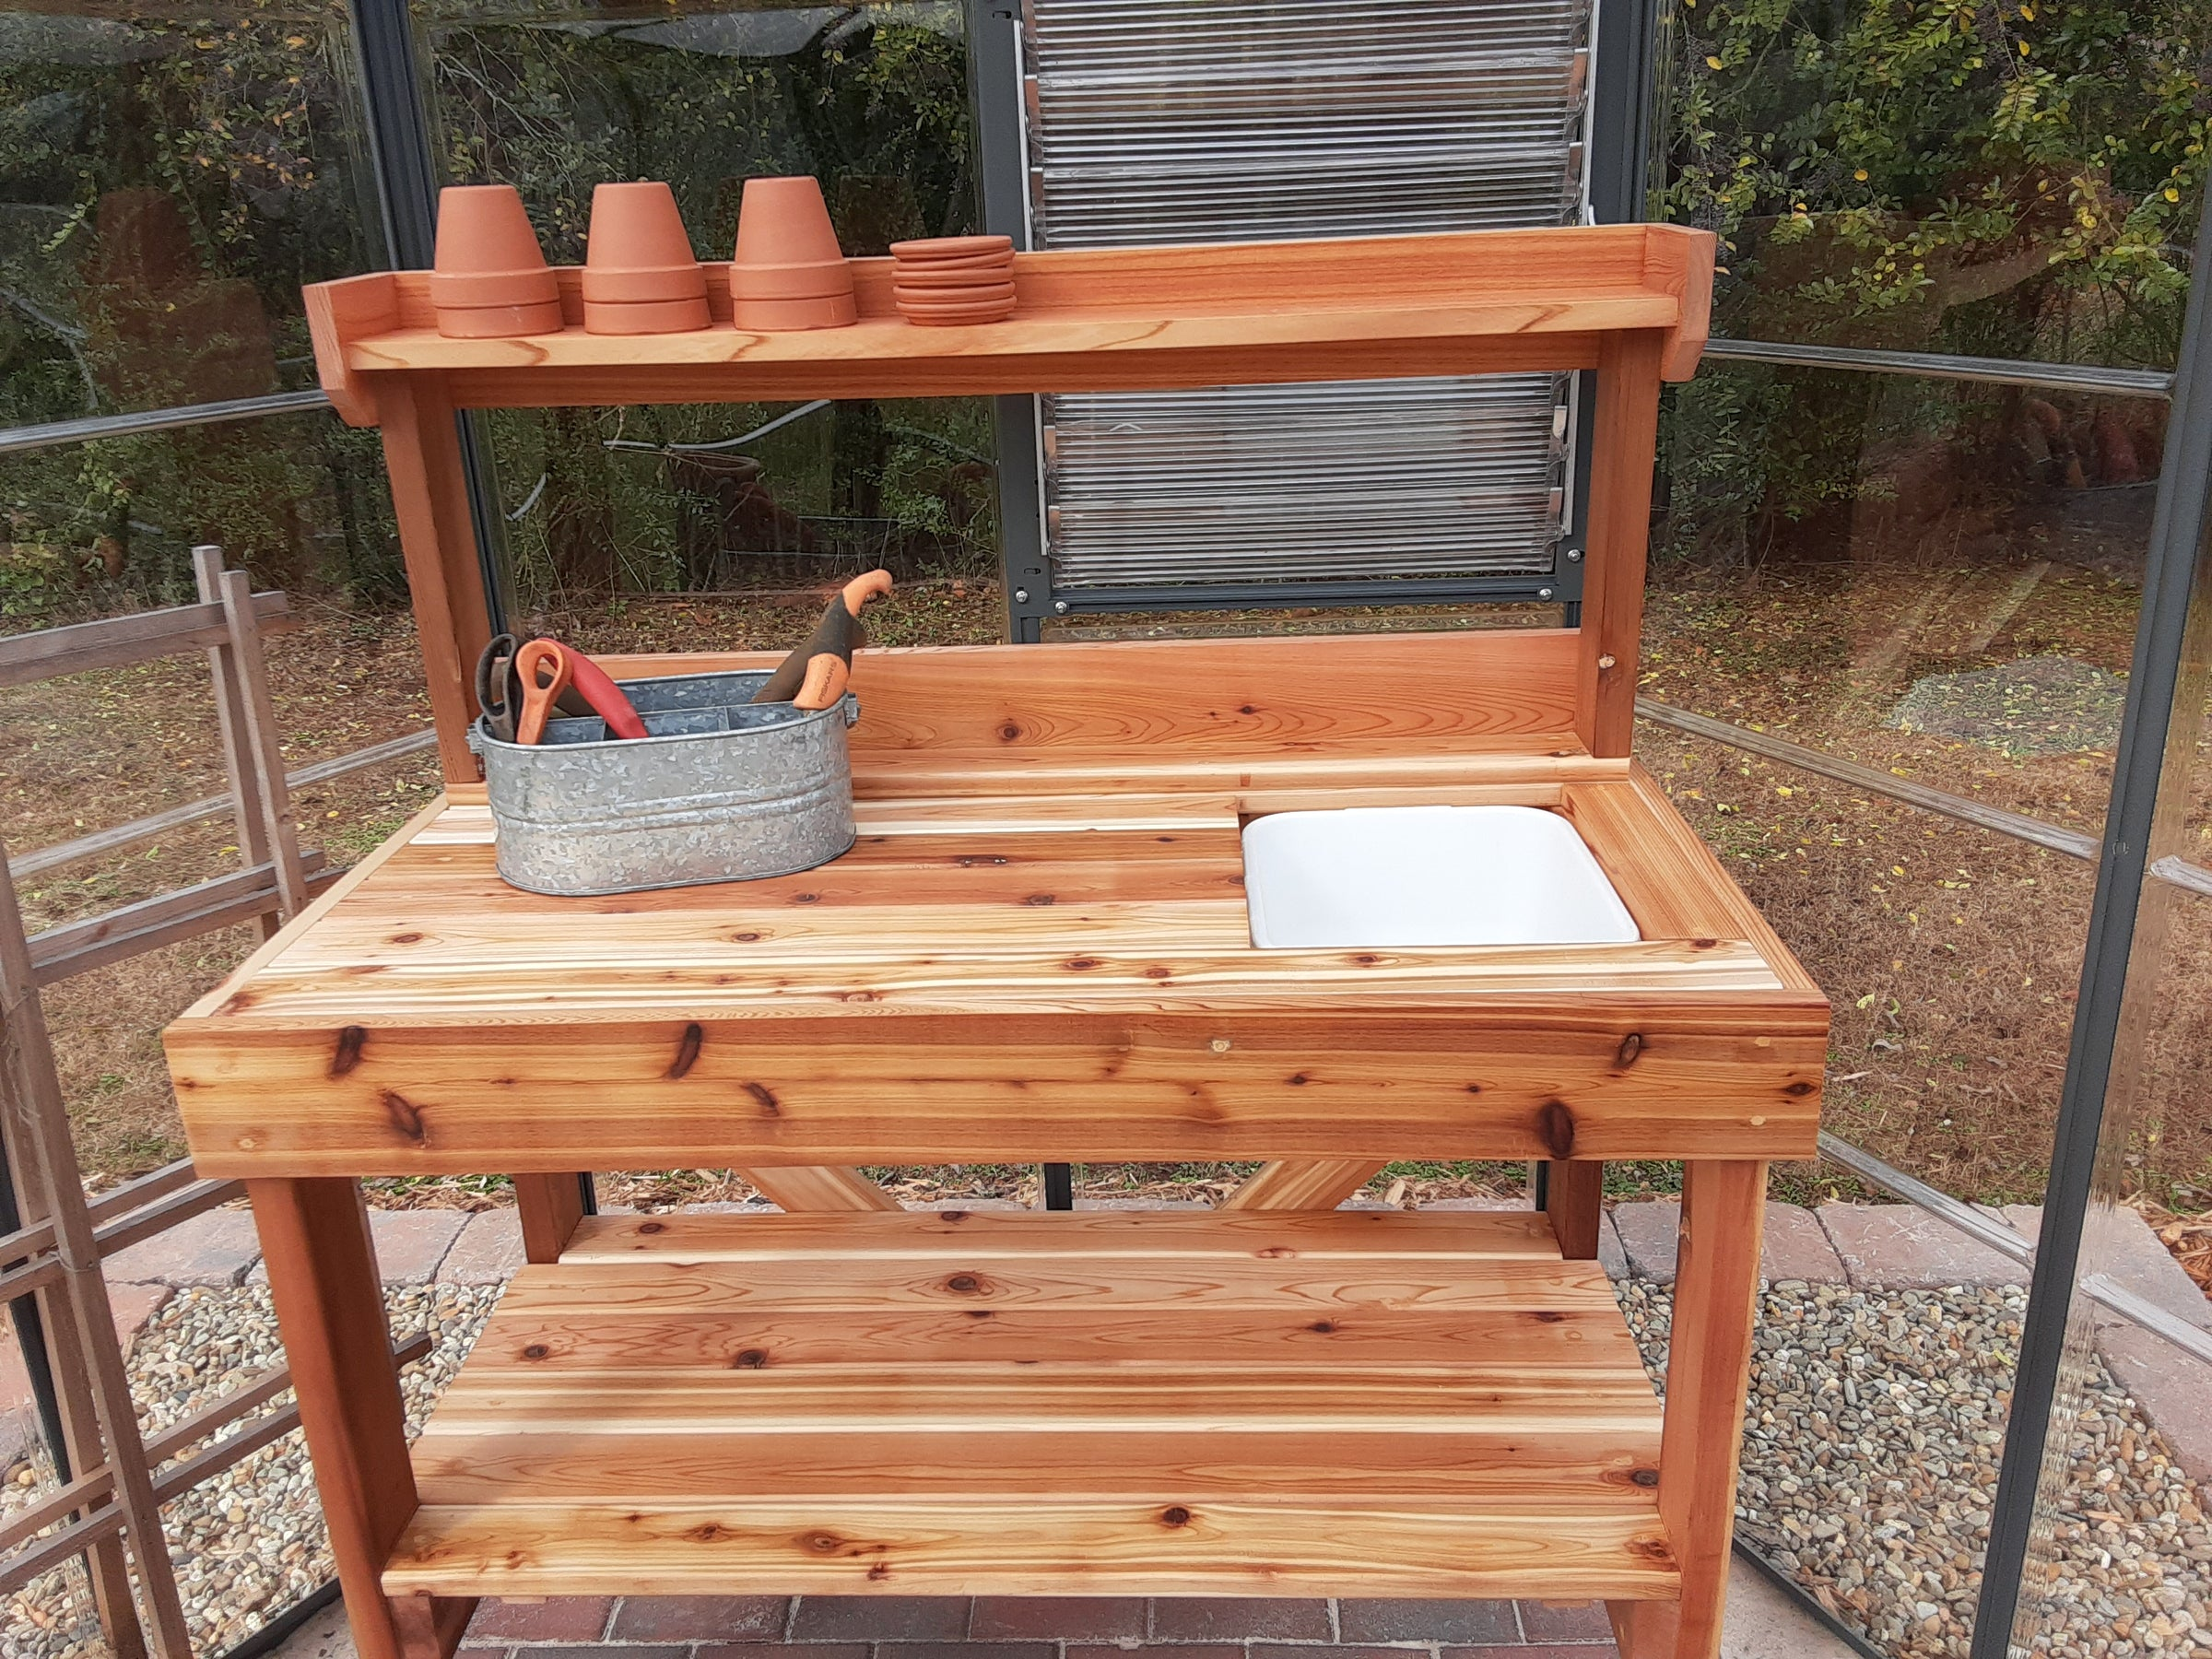 Garden Potting Bench Kits Cedar Potting Benches With Sink Cedarshed Usa